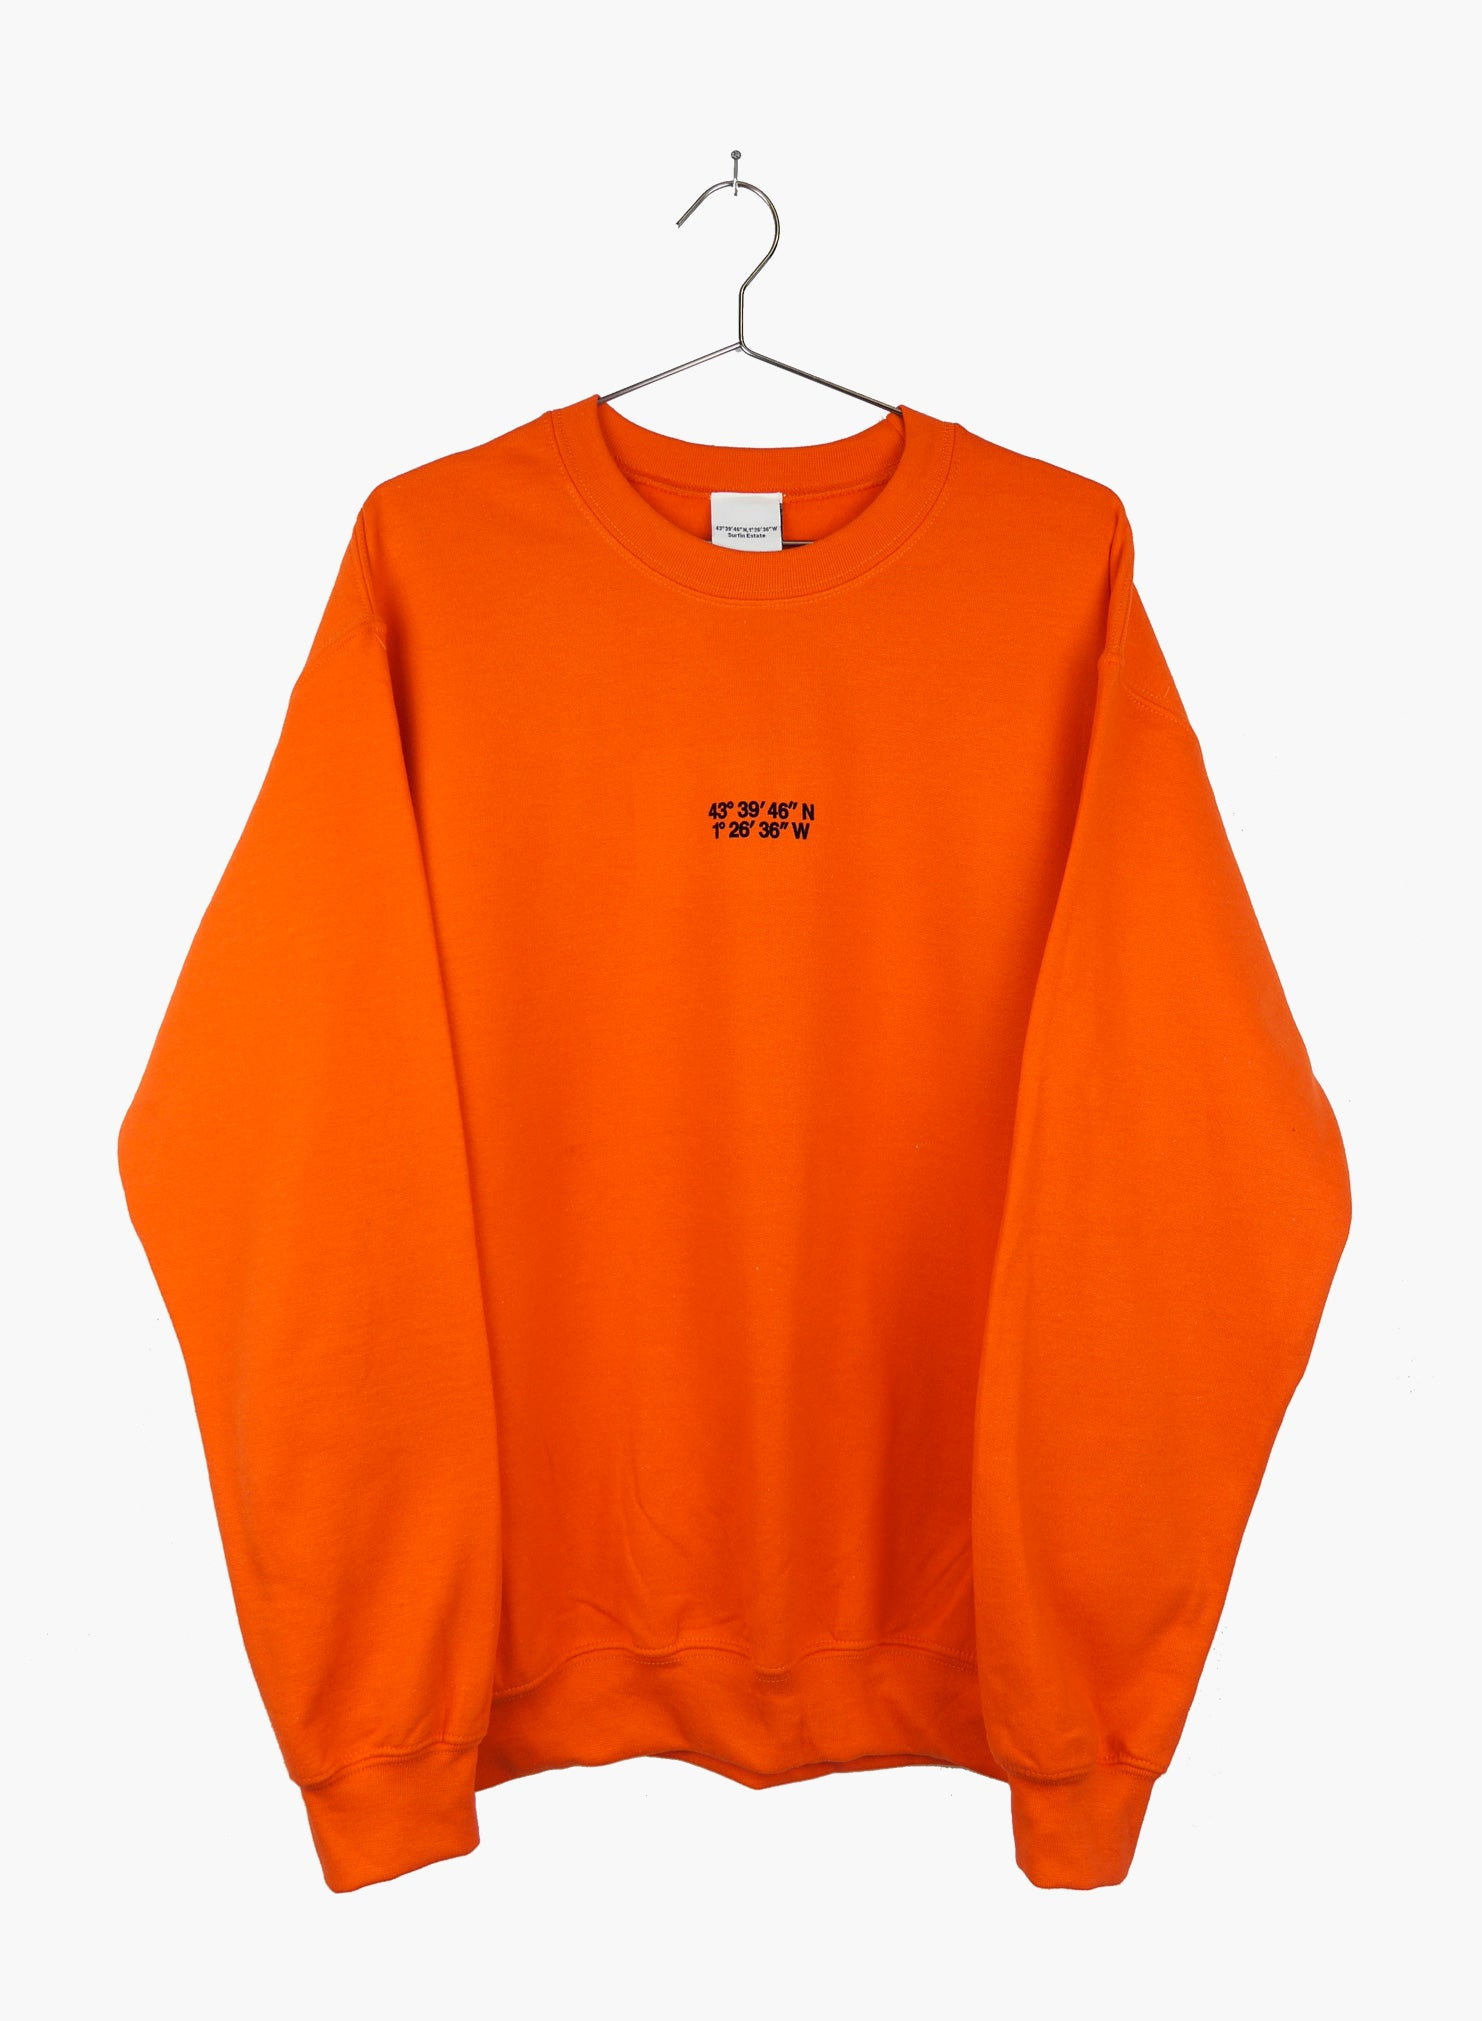 Surfin Estate crewneck coordinates logo, orange